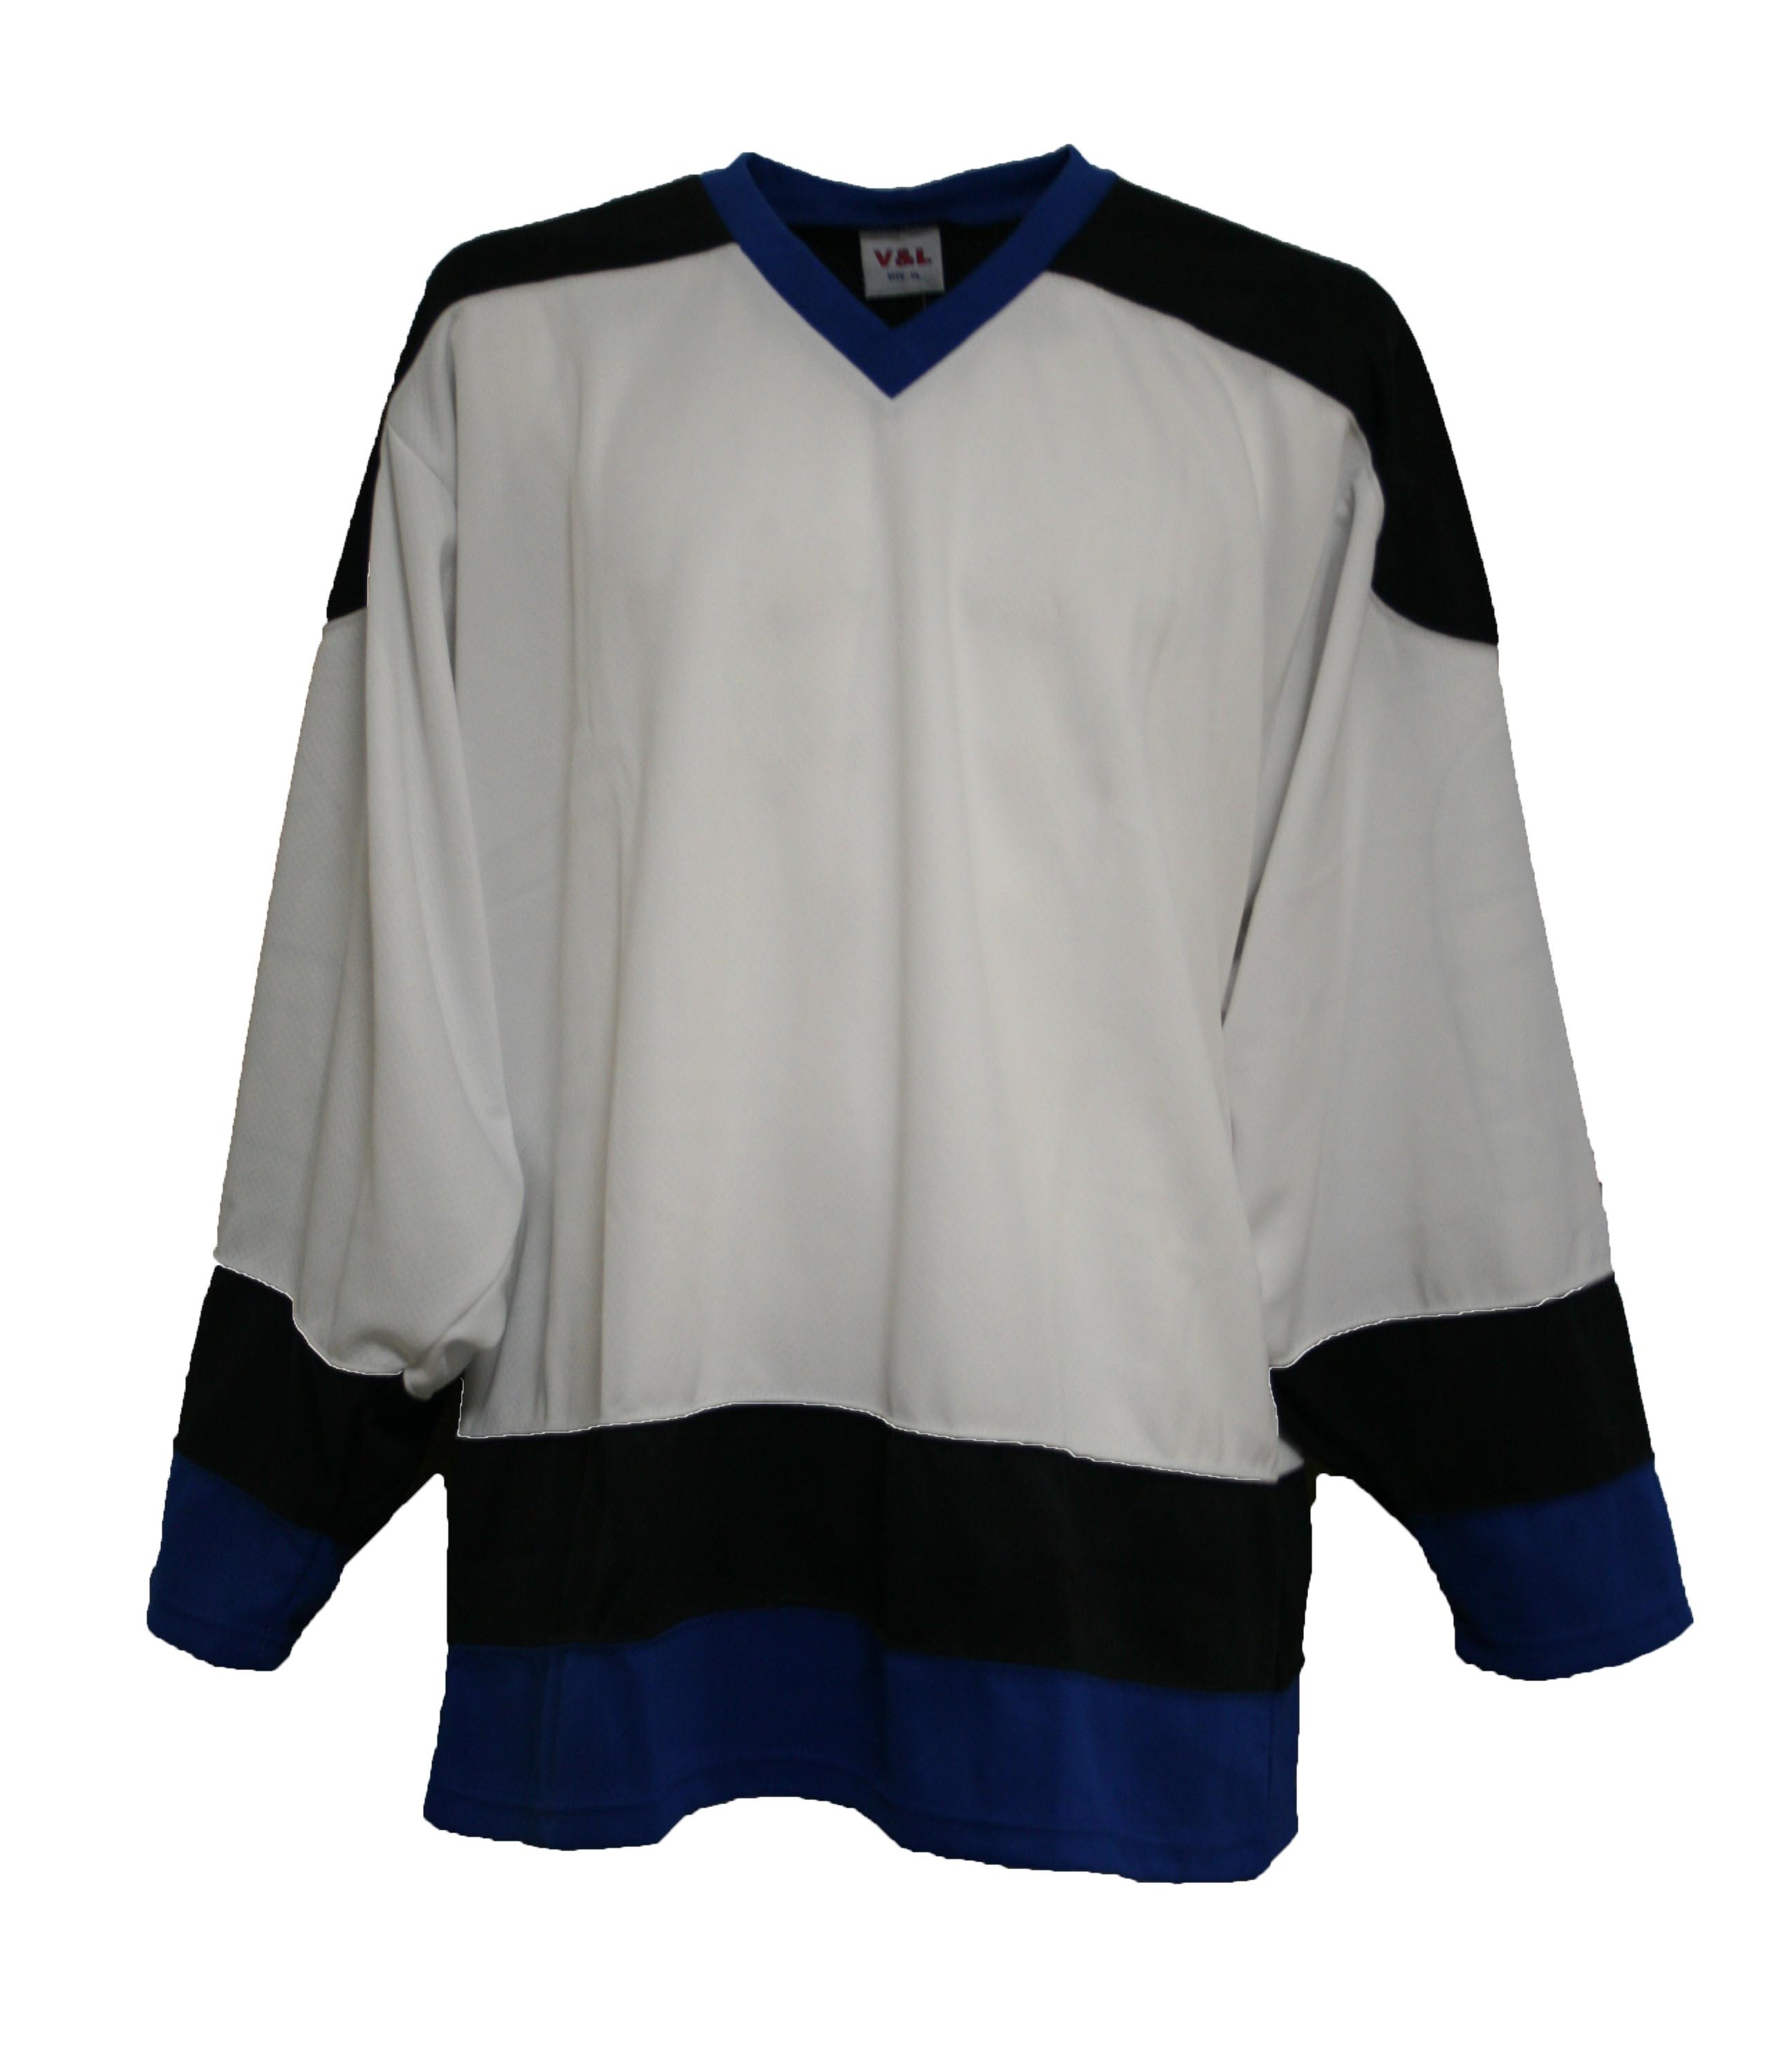 V&L Adult Tampa Bay Lightning Practice Jersey Away